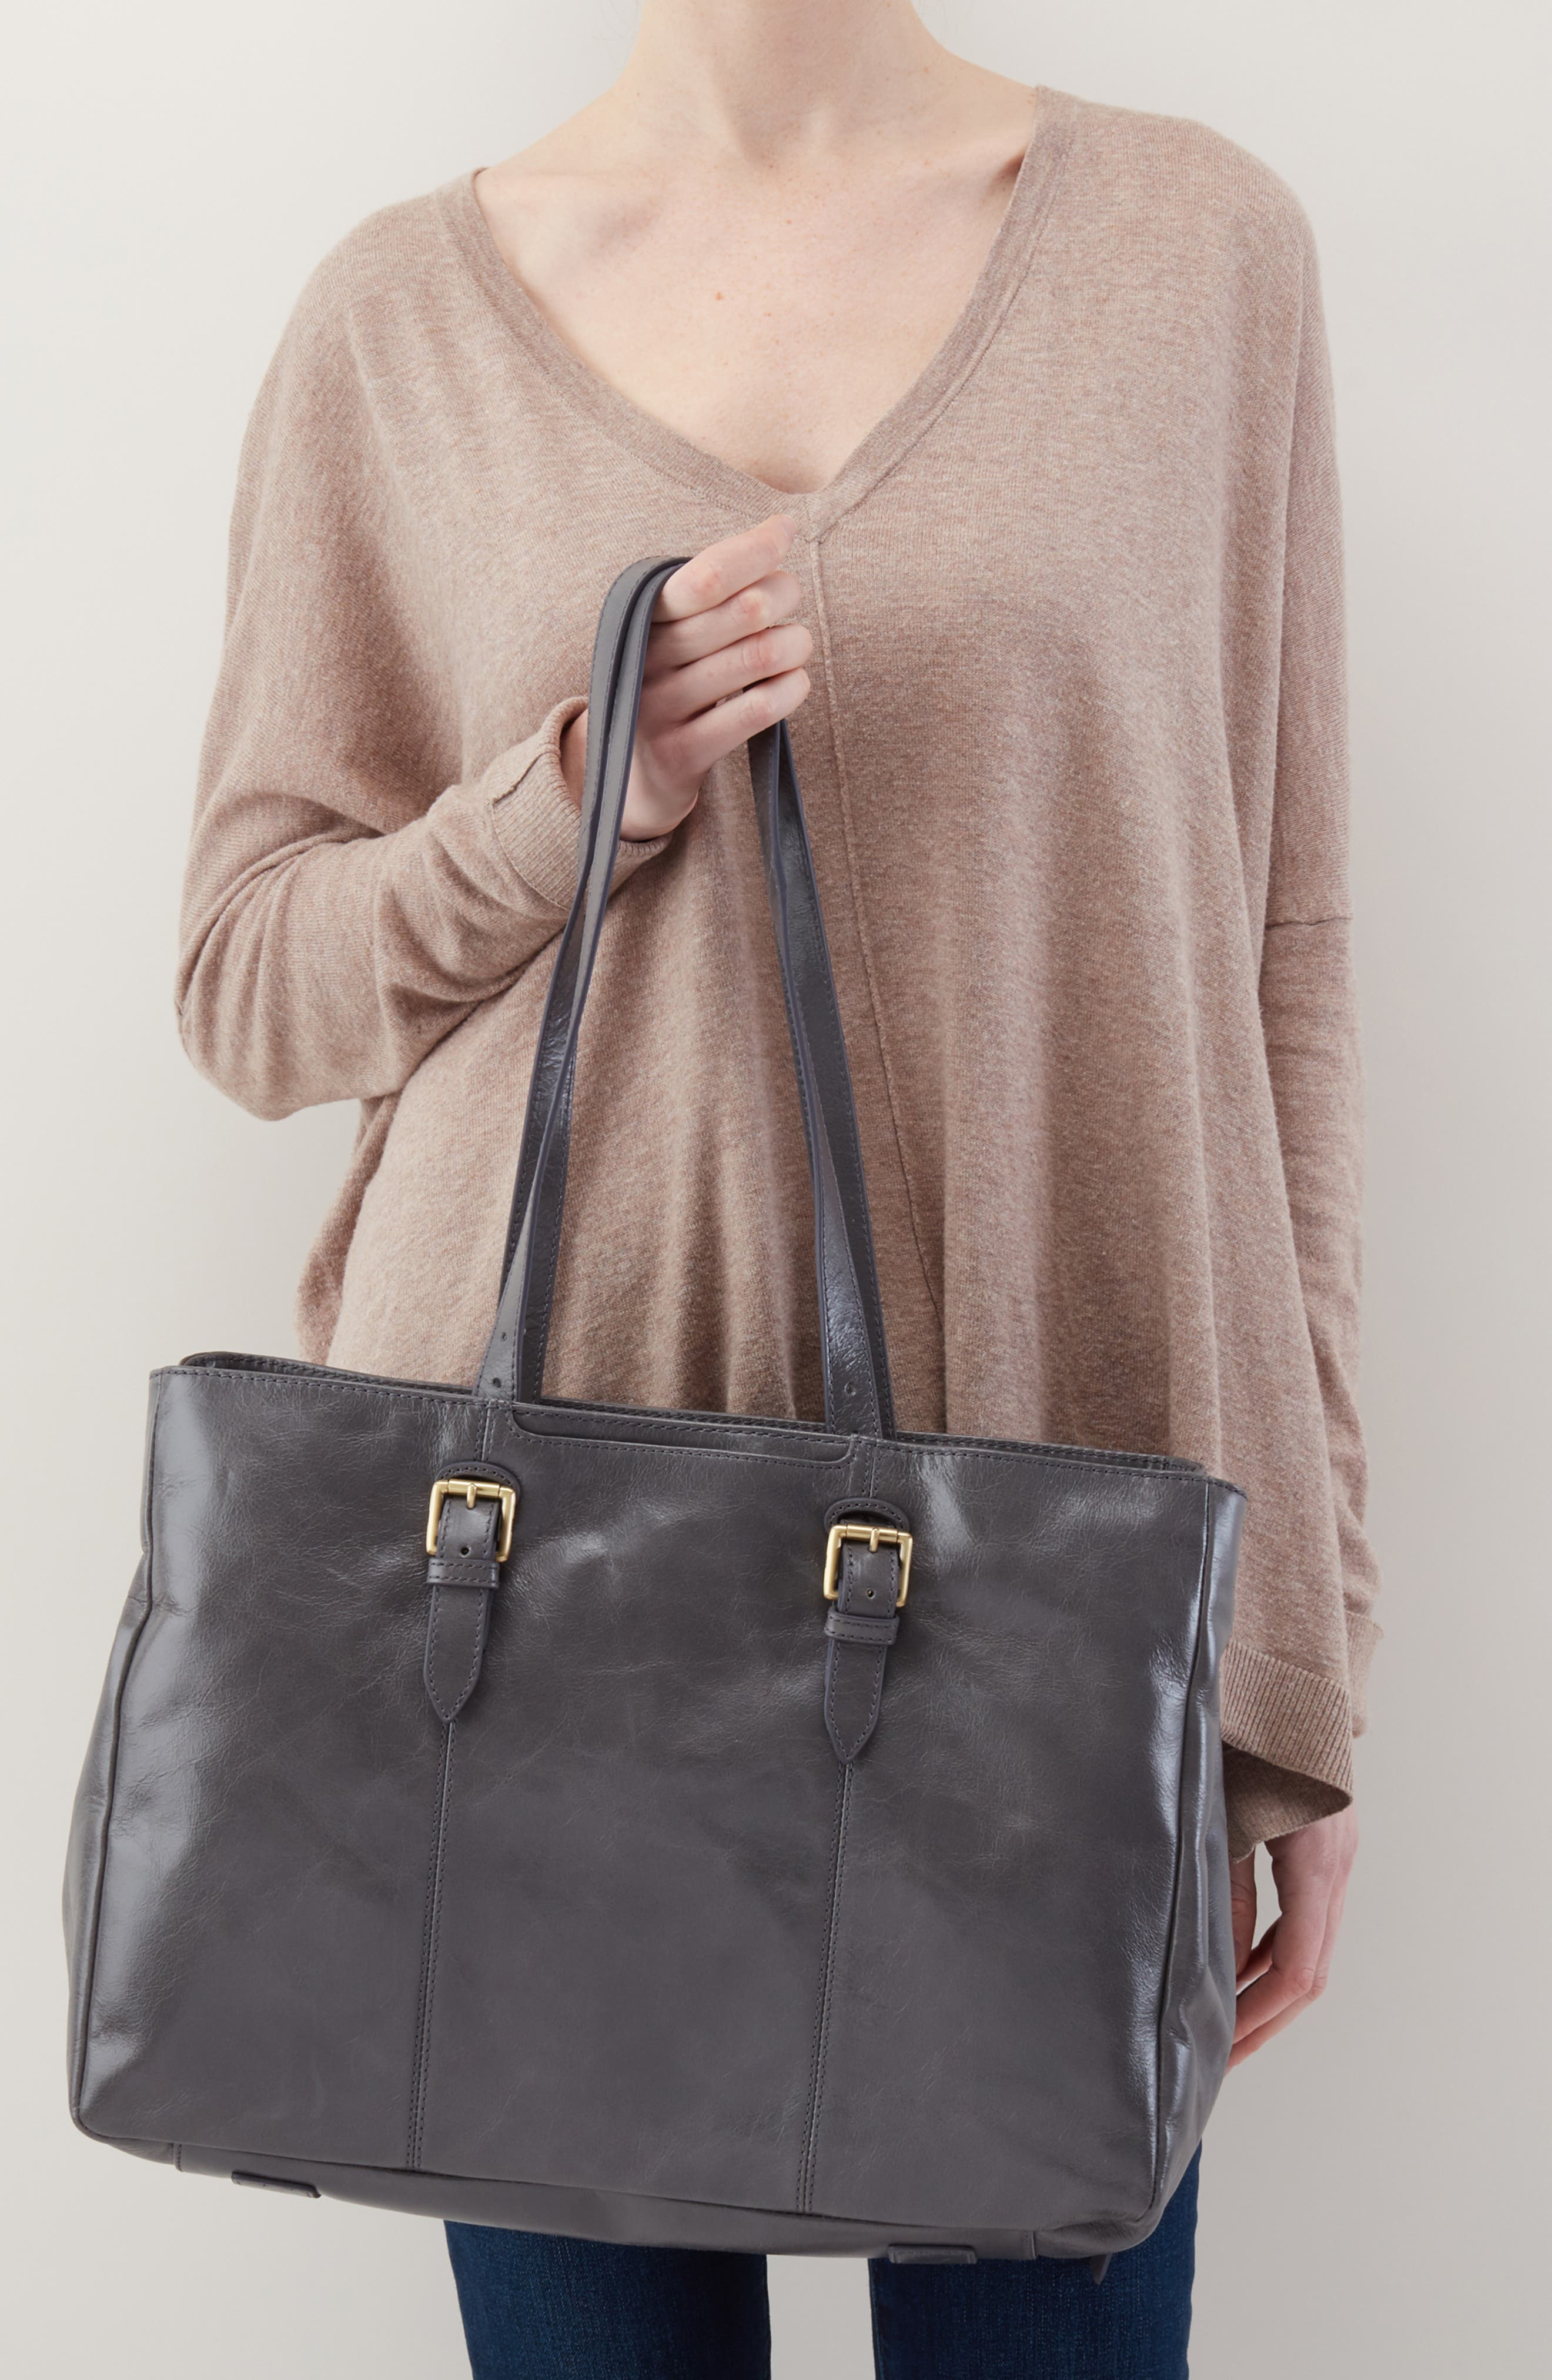 Cabot Tote,                             Alternate thumbnail 2, color,                             025